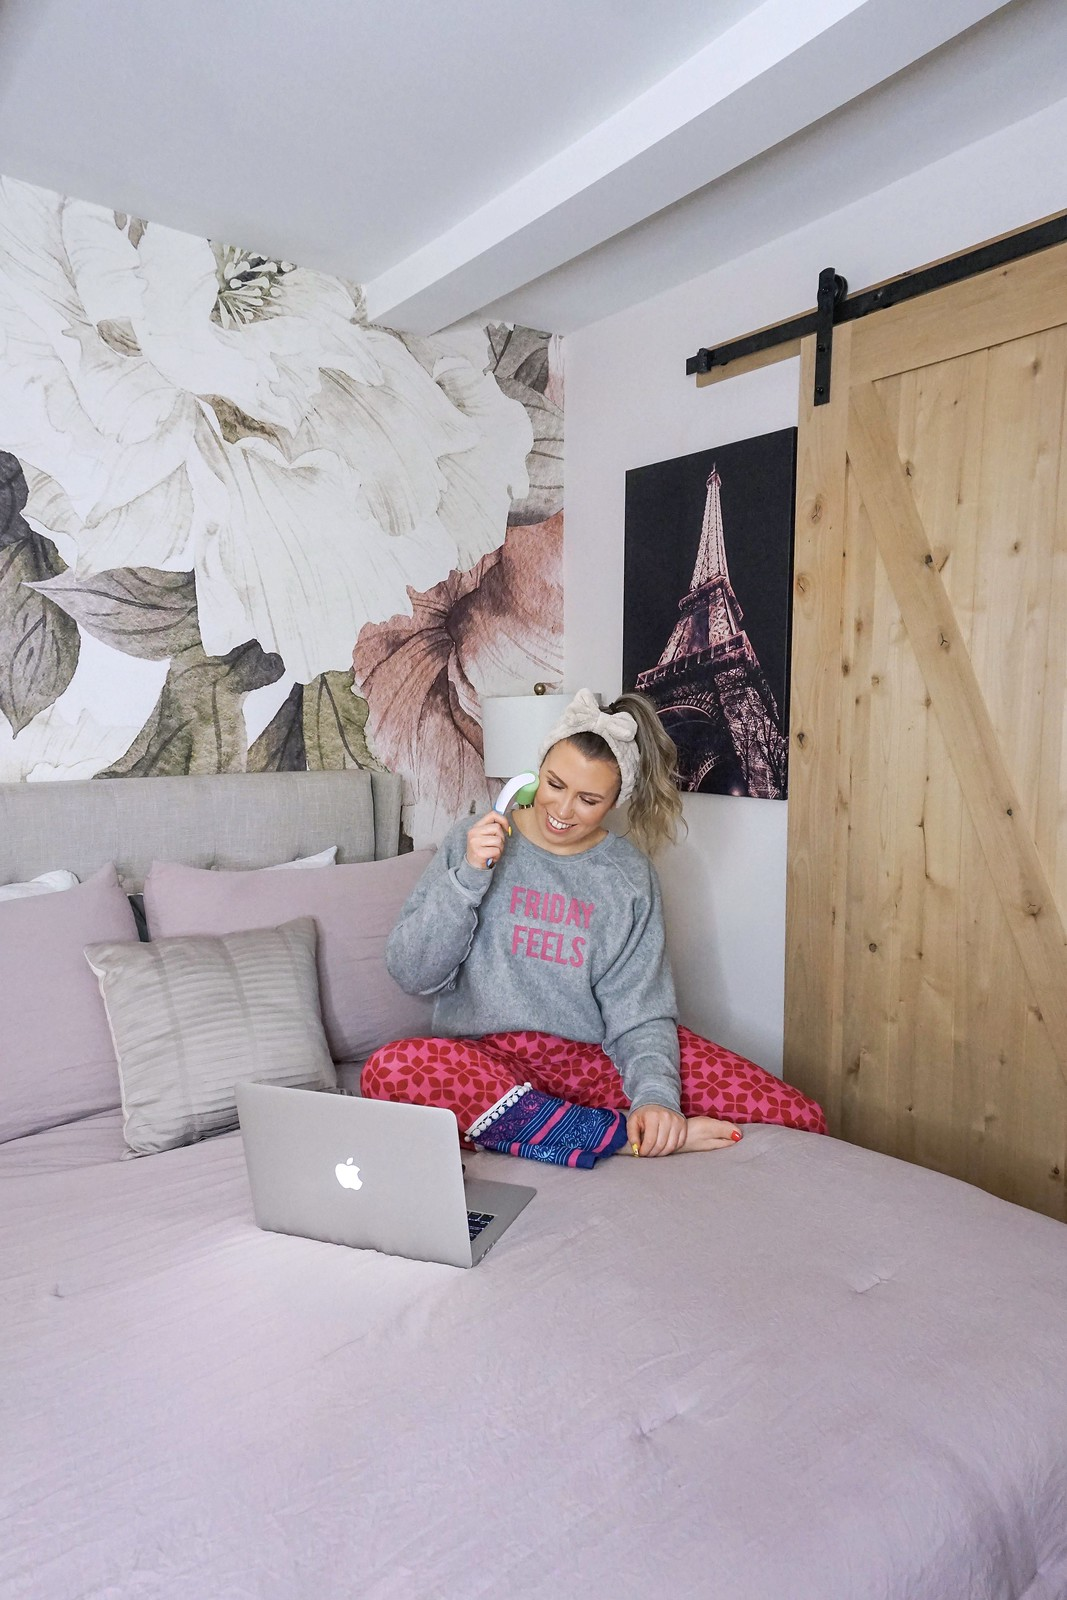 Friday Feels Sweatshirt | 10 Comfortable Quarantine Outfits | Stay At Home Outfit Ideas | Shelter in Place Outfits | Self Care Looks